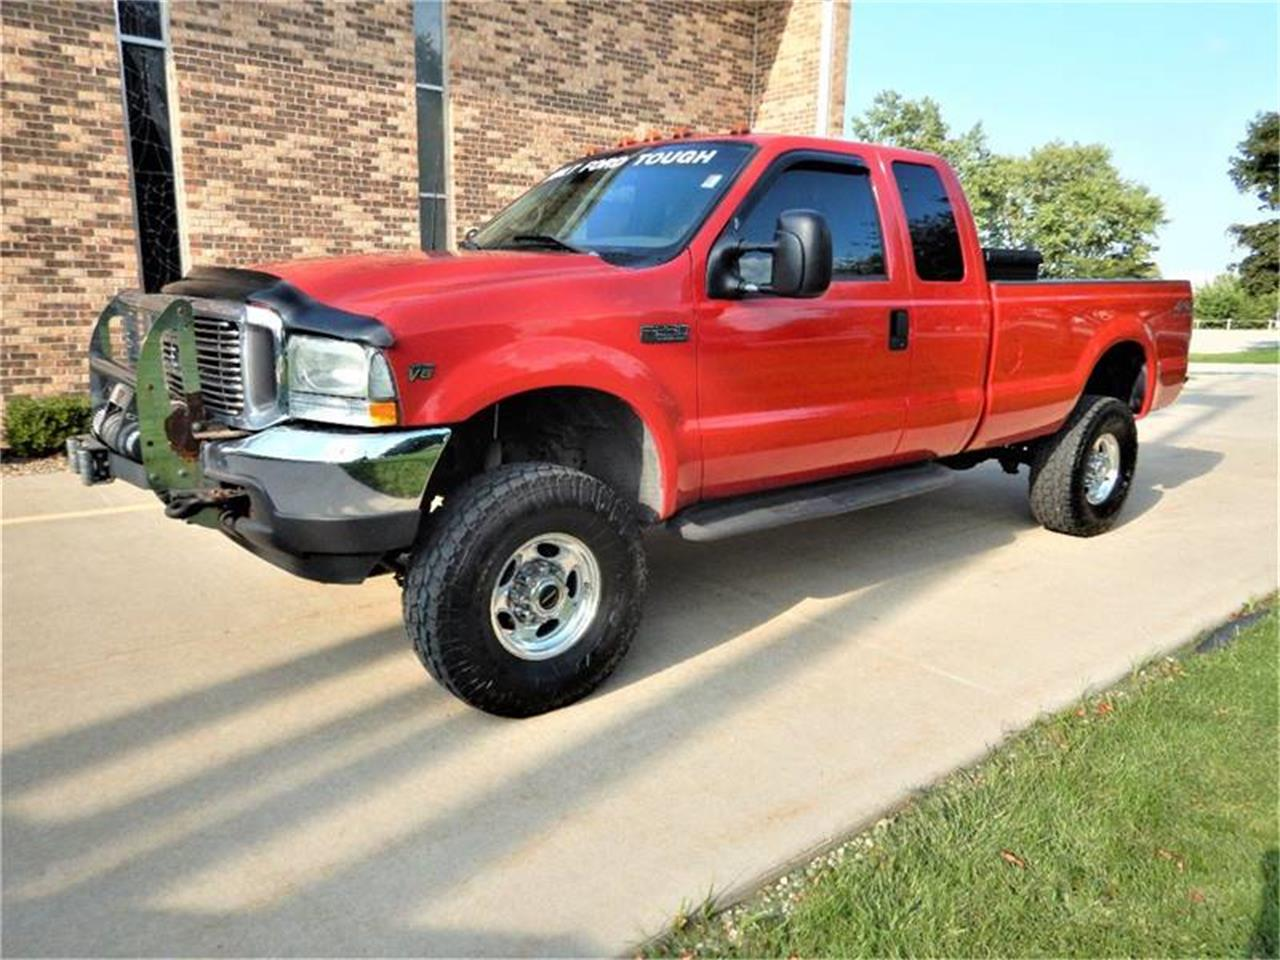 Large picture of 00 f250 ofsm